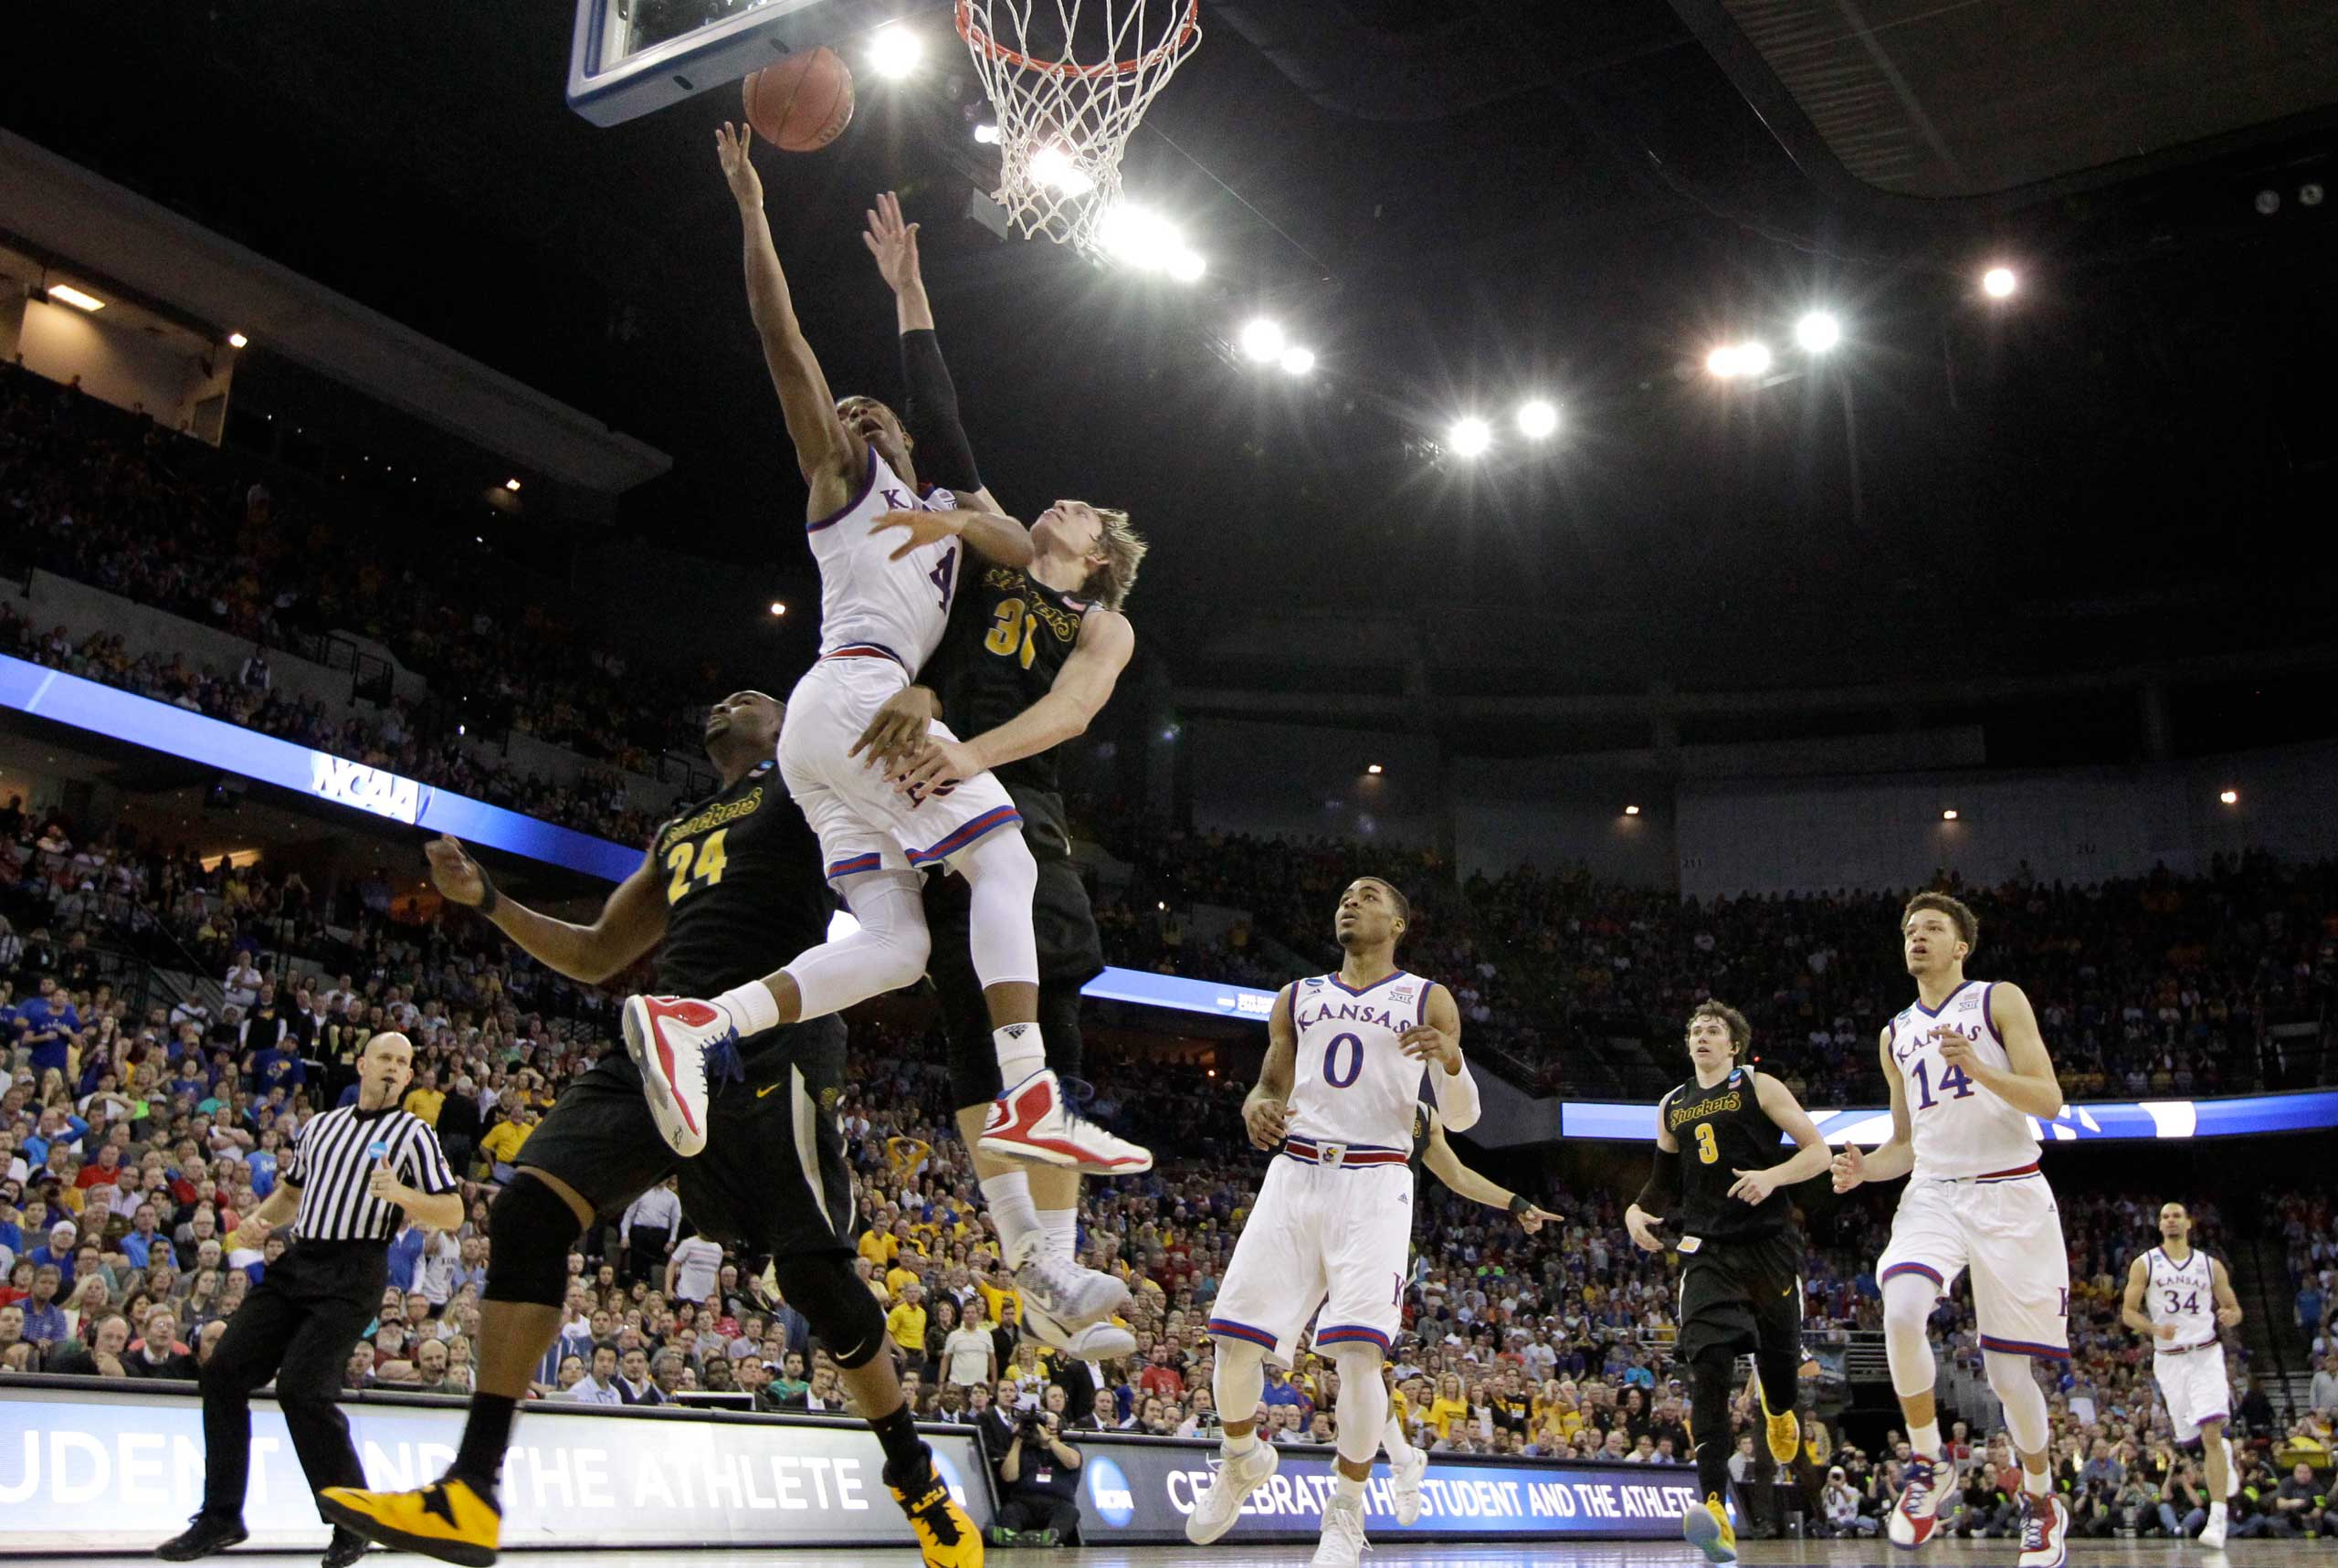 Kansas guard Devonte Graham (4) drives to the basket between Wichita State defenders Shaquille Morris (24) and Ron Baker (31) during the second half of an NCAA college basketball tournament Round of 32 game on March 22, 2015, in Omaha, Neb.